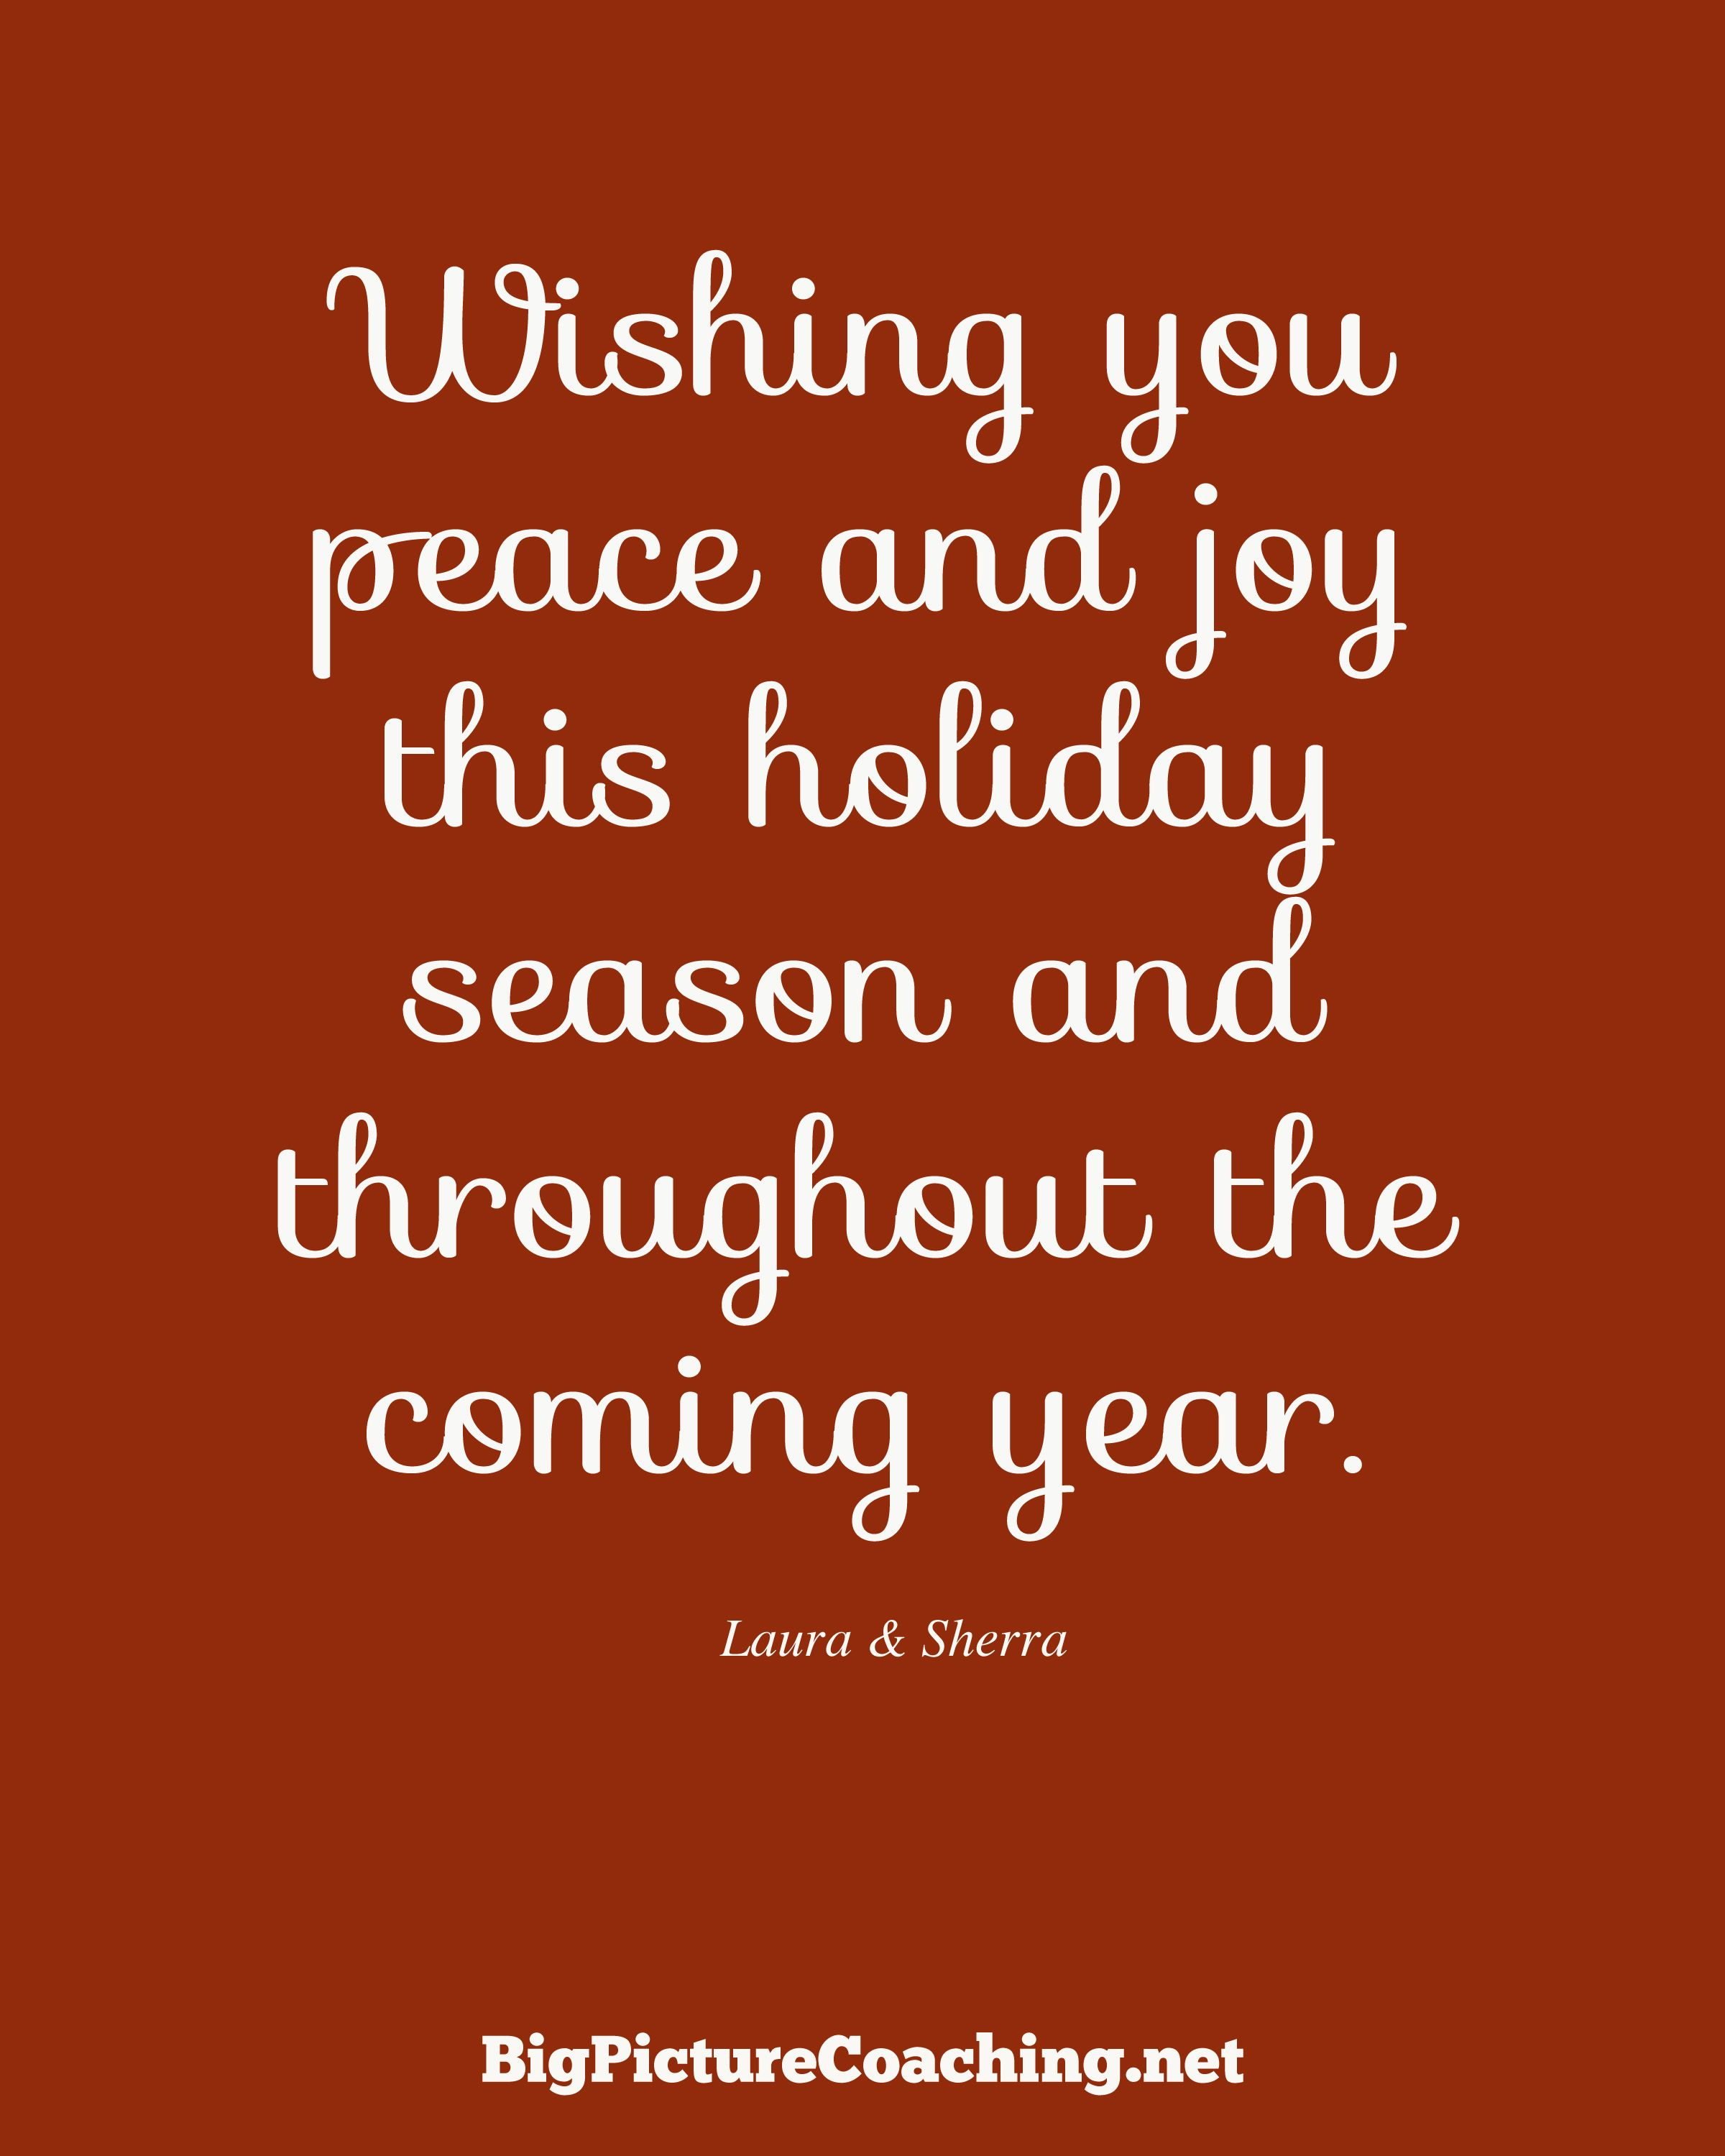 Contact Page Happy Holidays Quotes Inspirational Quotes Holidays Christmas Quotes Inspirational